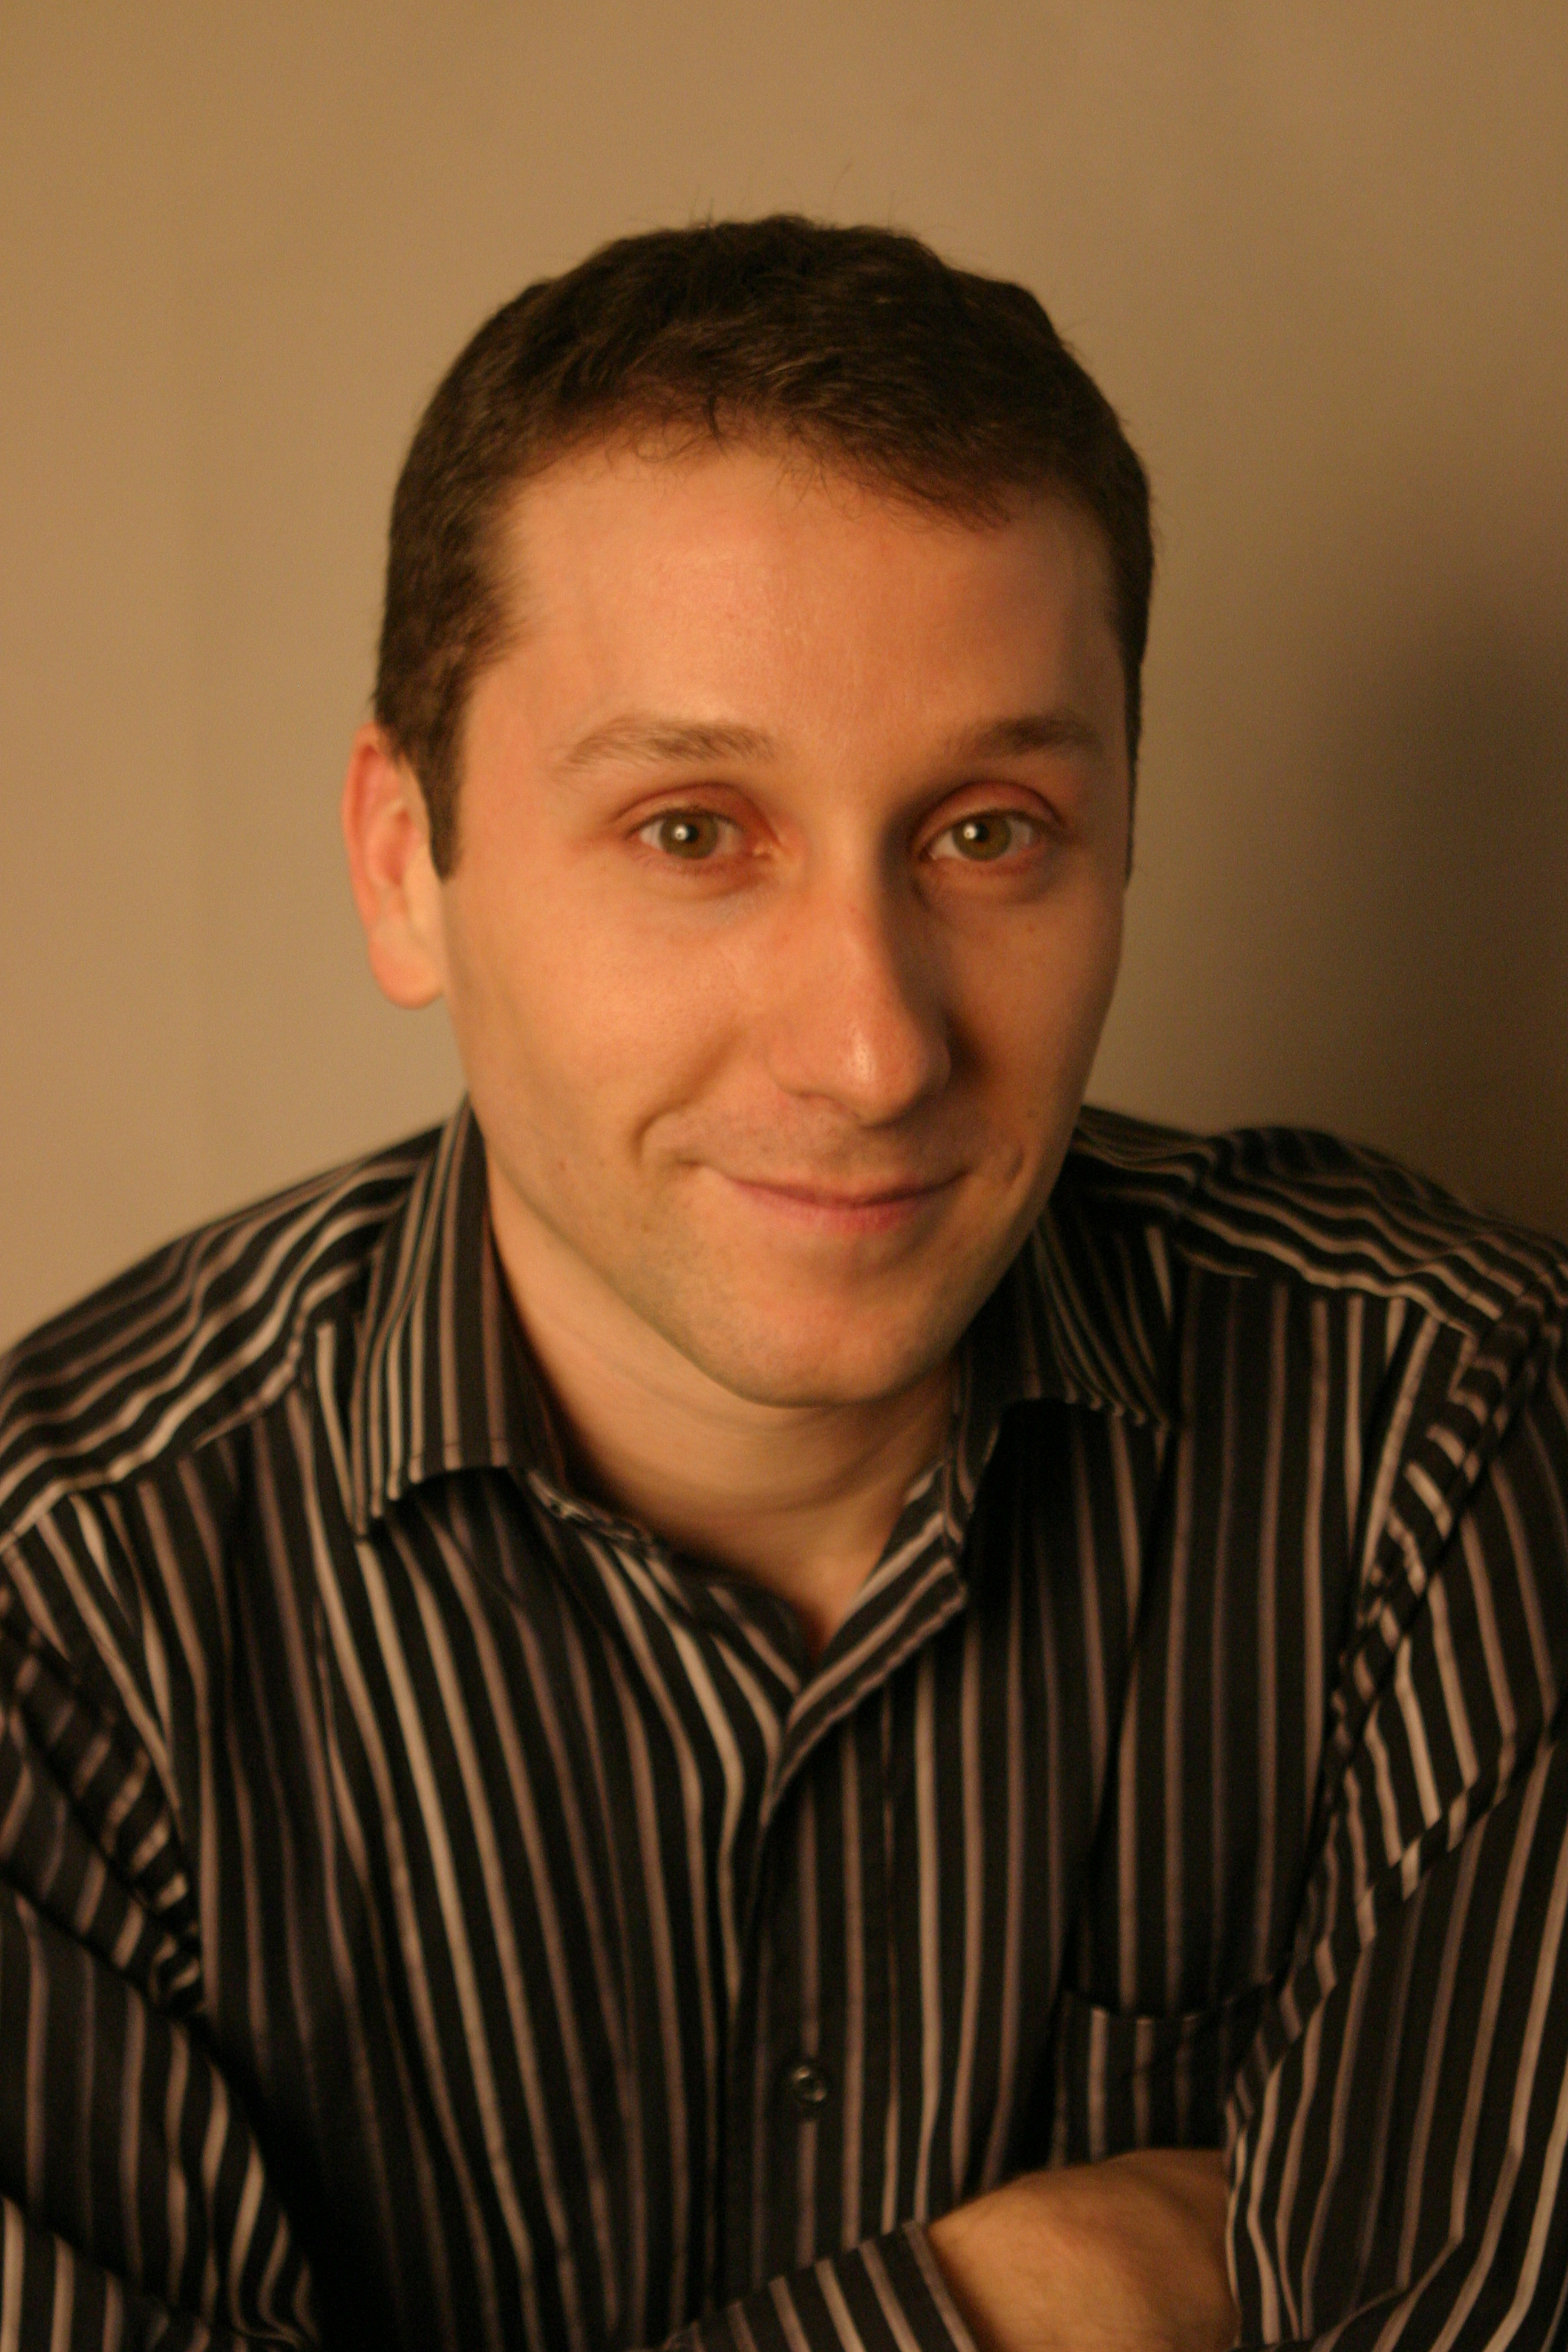 David Ghilardi